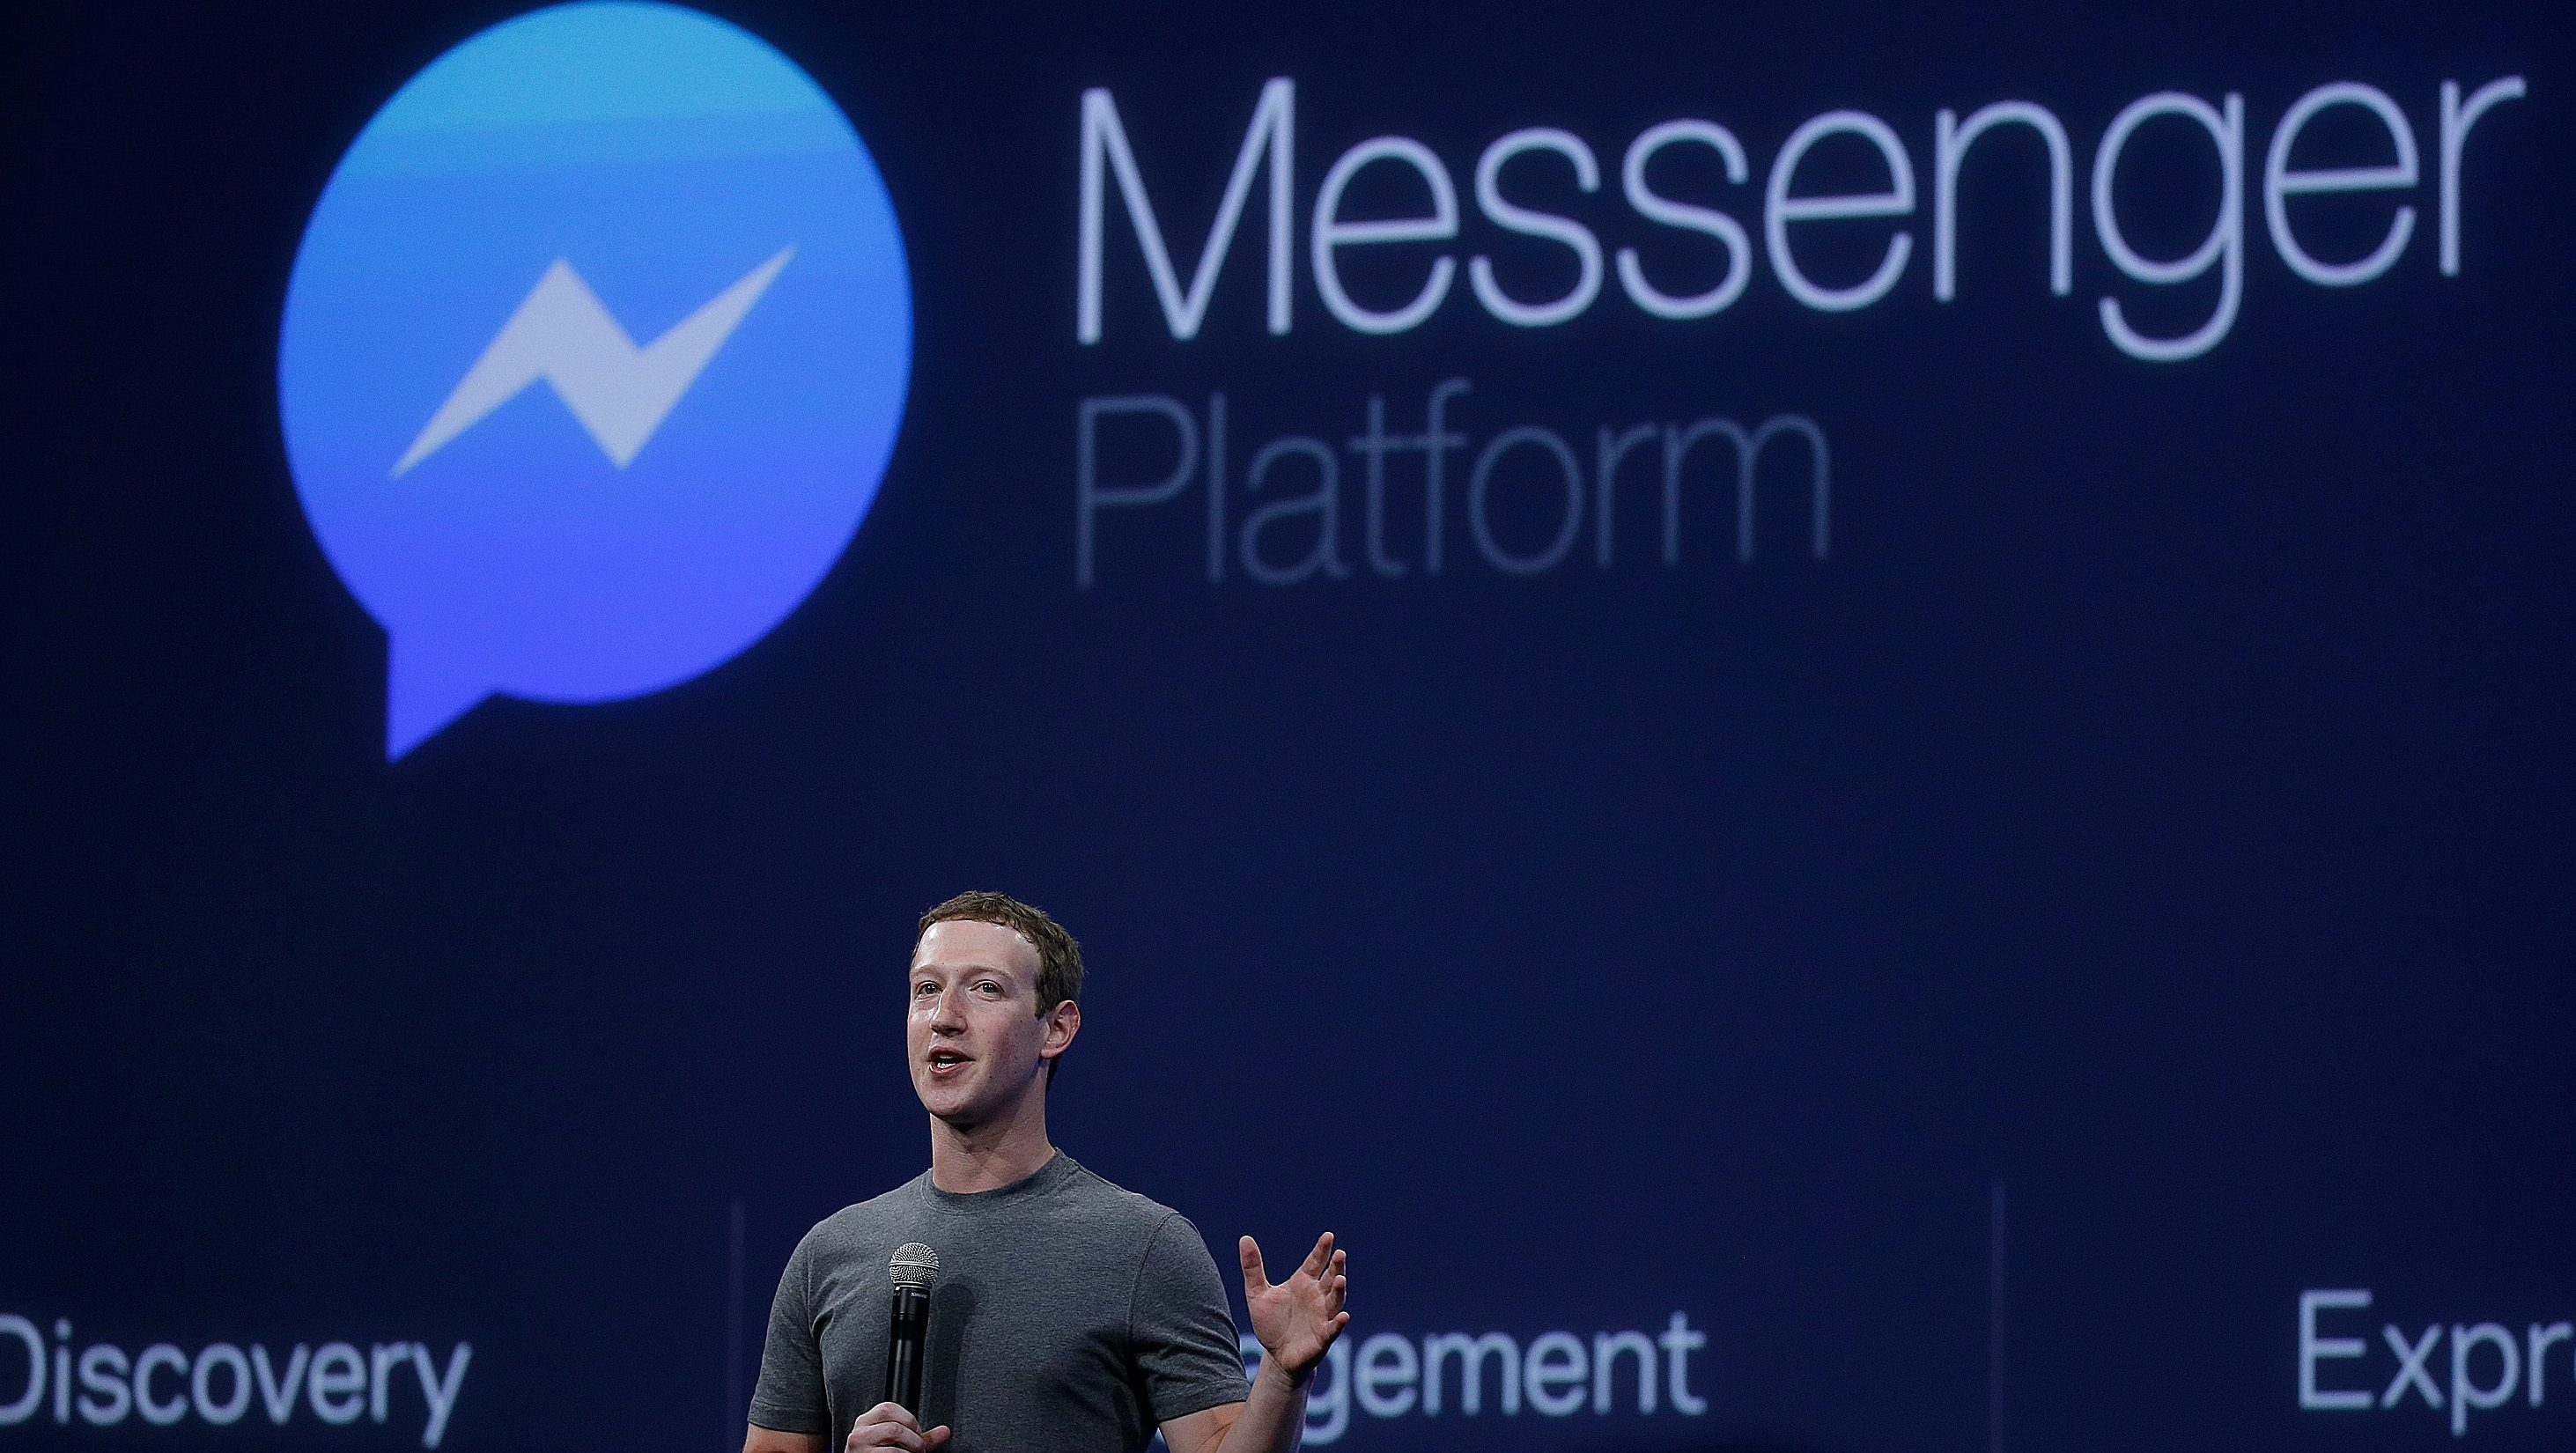 CEO Mark Zuckerberg talks about the Messenger app during the Facebook F8 Developer Conference Wednesday, March 25, 2015, in San Francisco. Facebook is trying to mold its Messenger app into a more versatile communications channel as smartphones create new ways for people to connect with friends and businesses beyond the walls of the company's ubiquitous social network. (AP Photo/Eric Risberg)